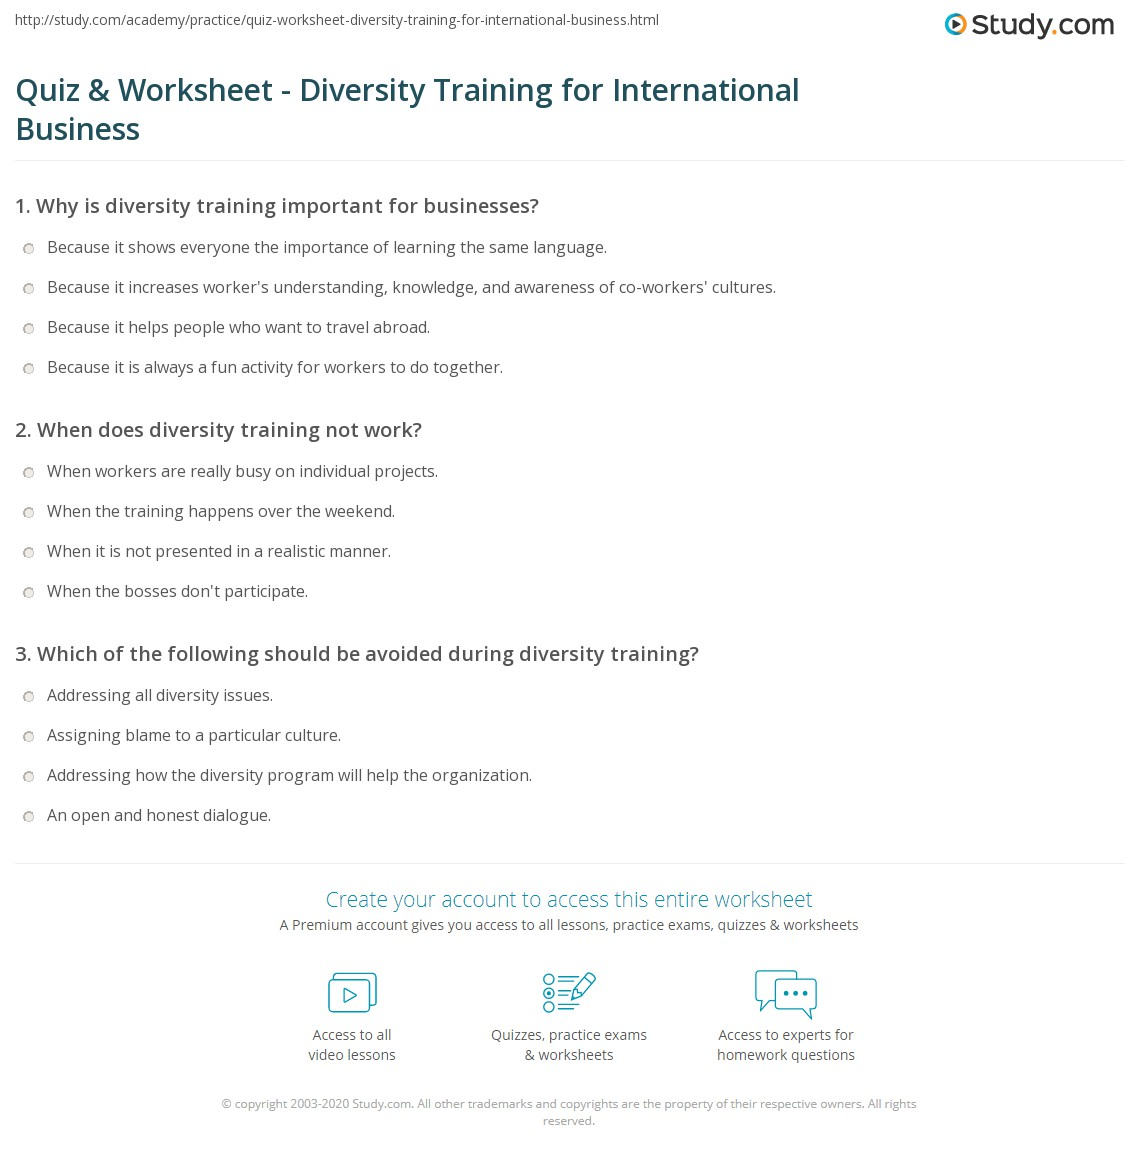 Printables Diversity Worksheets Mywcct Thousands Of